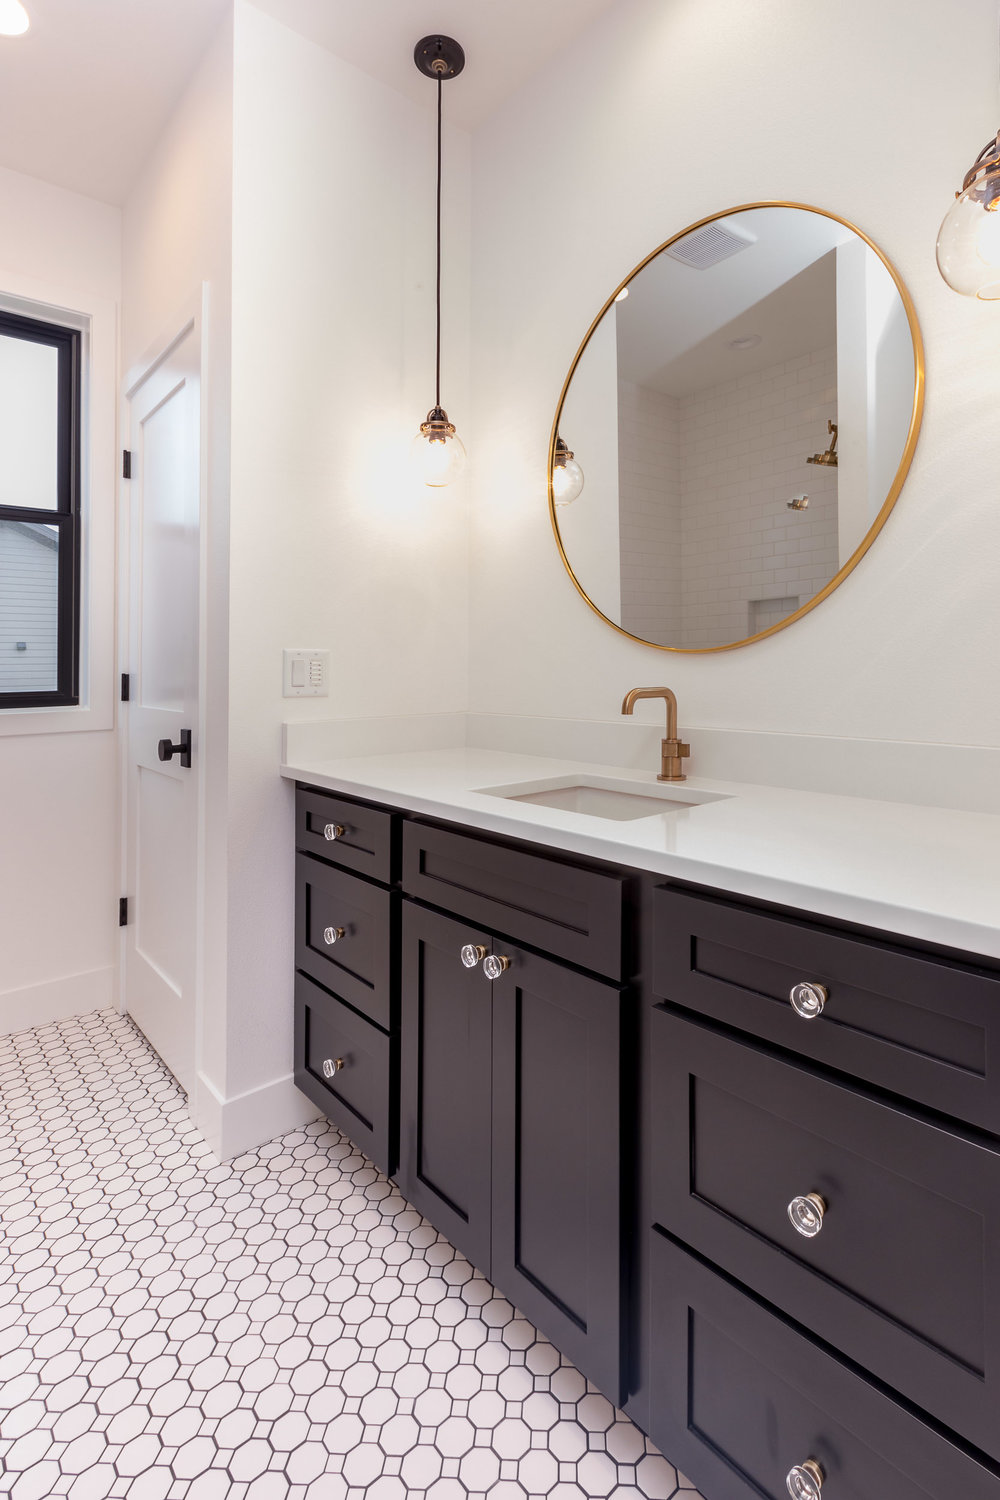 beyond-the-box-panted-cabinets-8.jpg